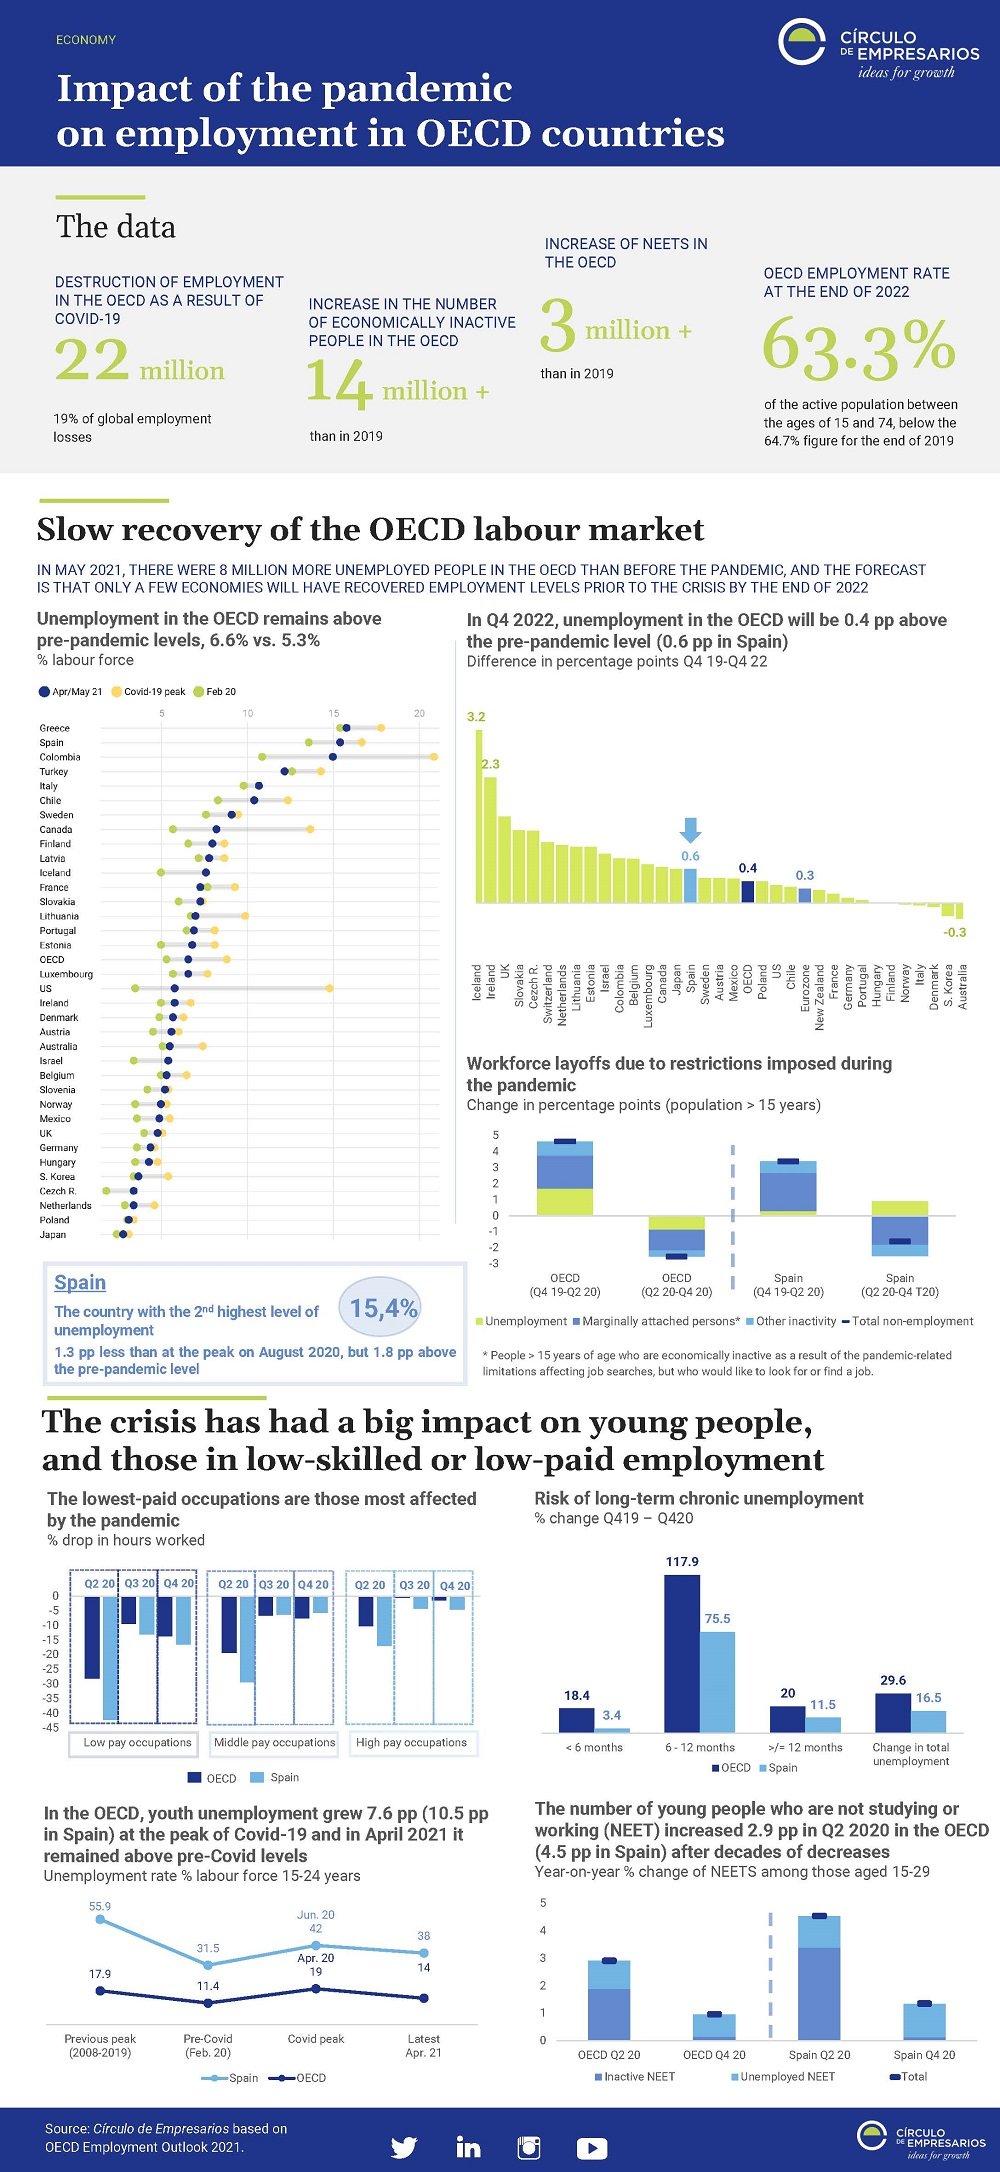 Impact-of-the-pandemic-on-employment-in-OECD-countries-July-2021-Circulo-de-Empresarios